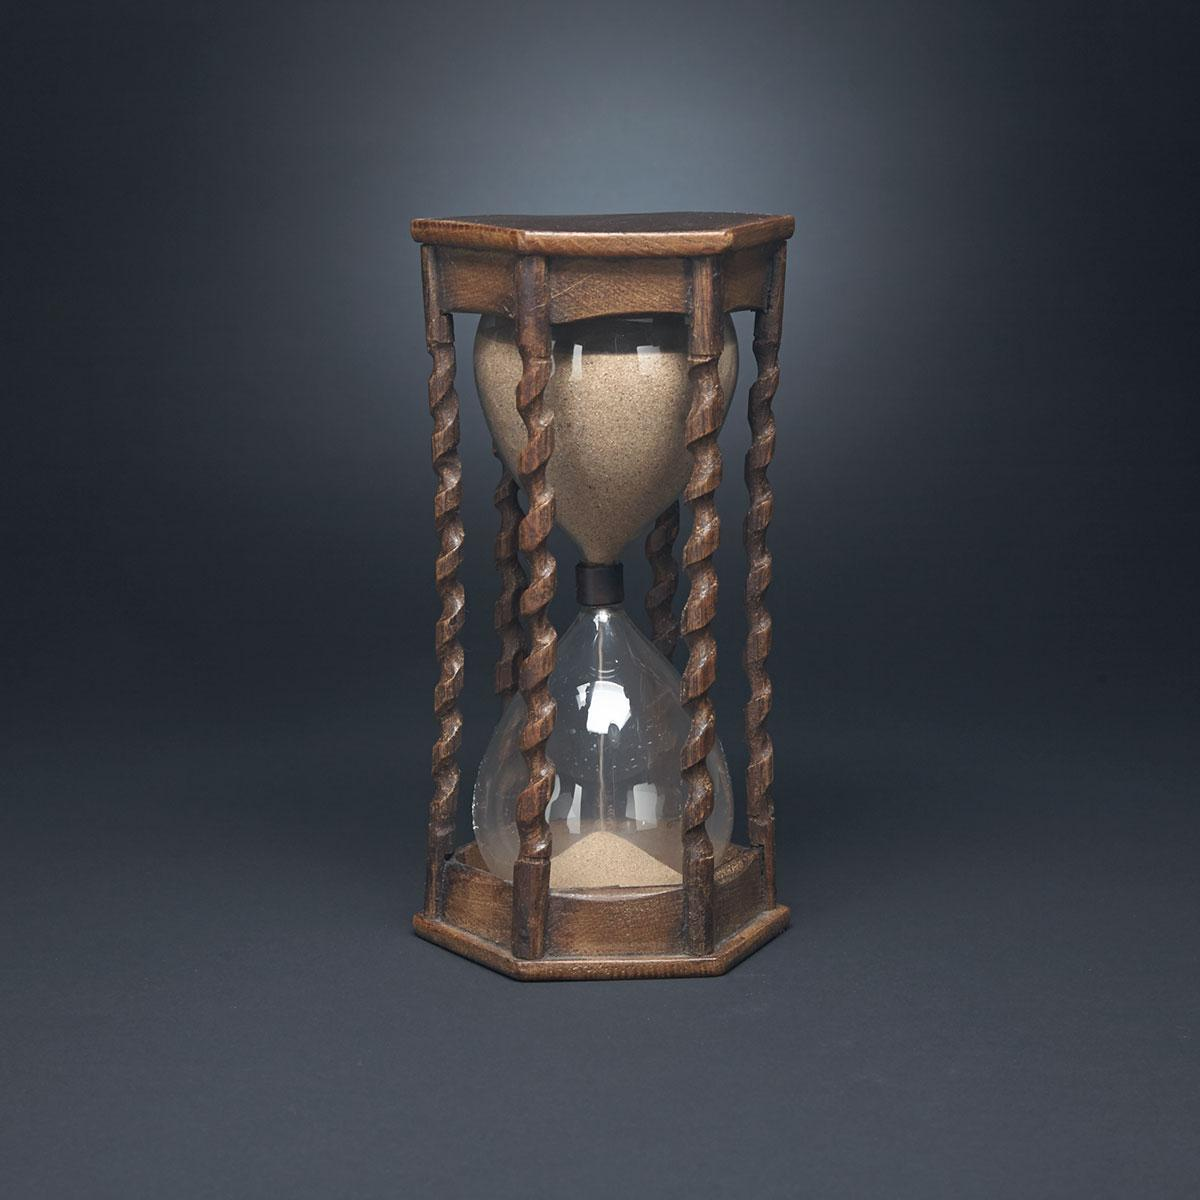 French Carved Oak Hour or Sand Glass, 19th century